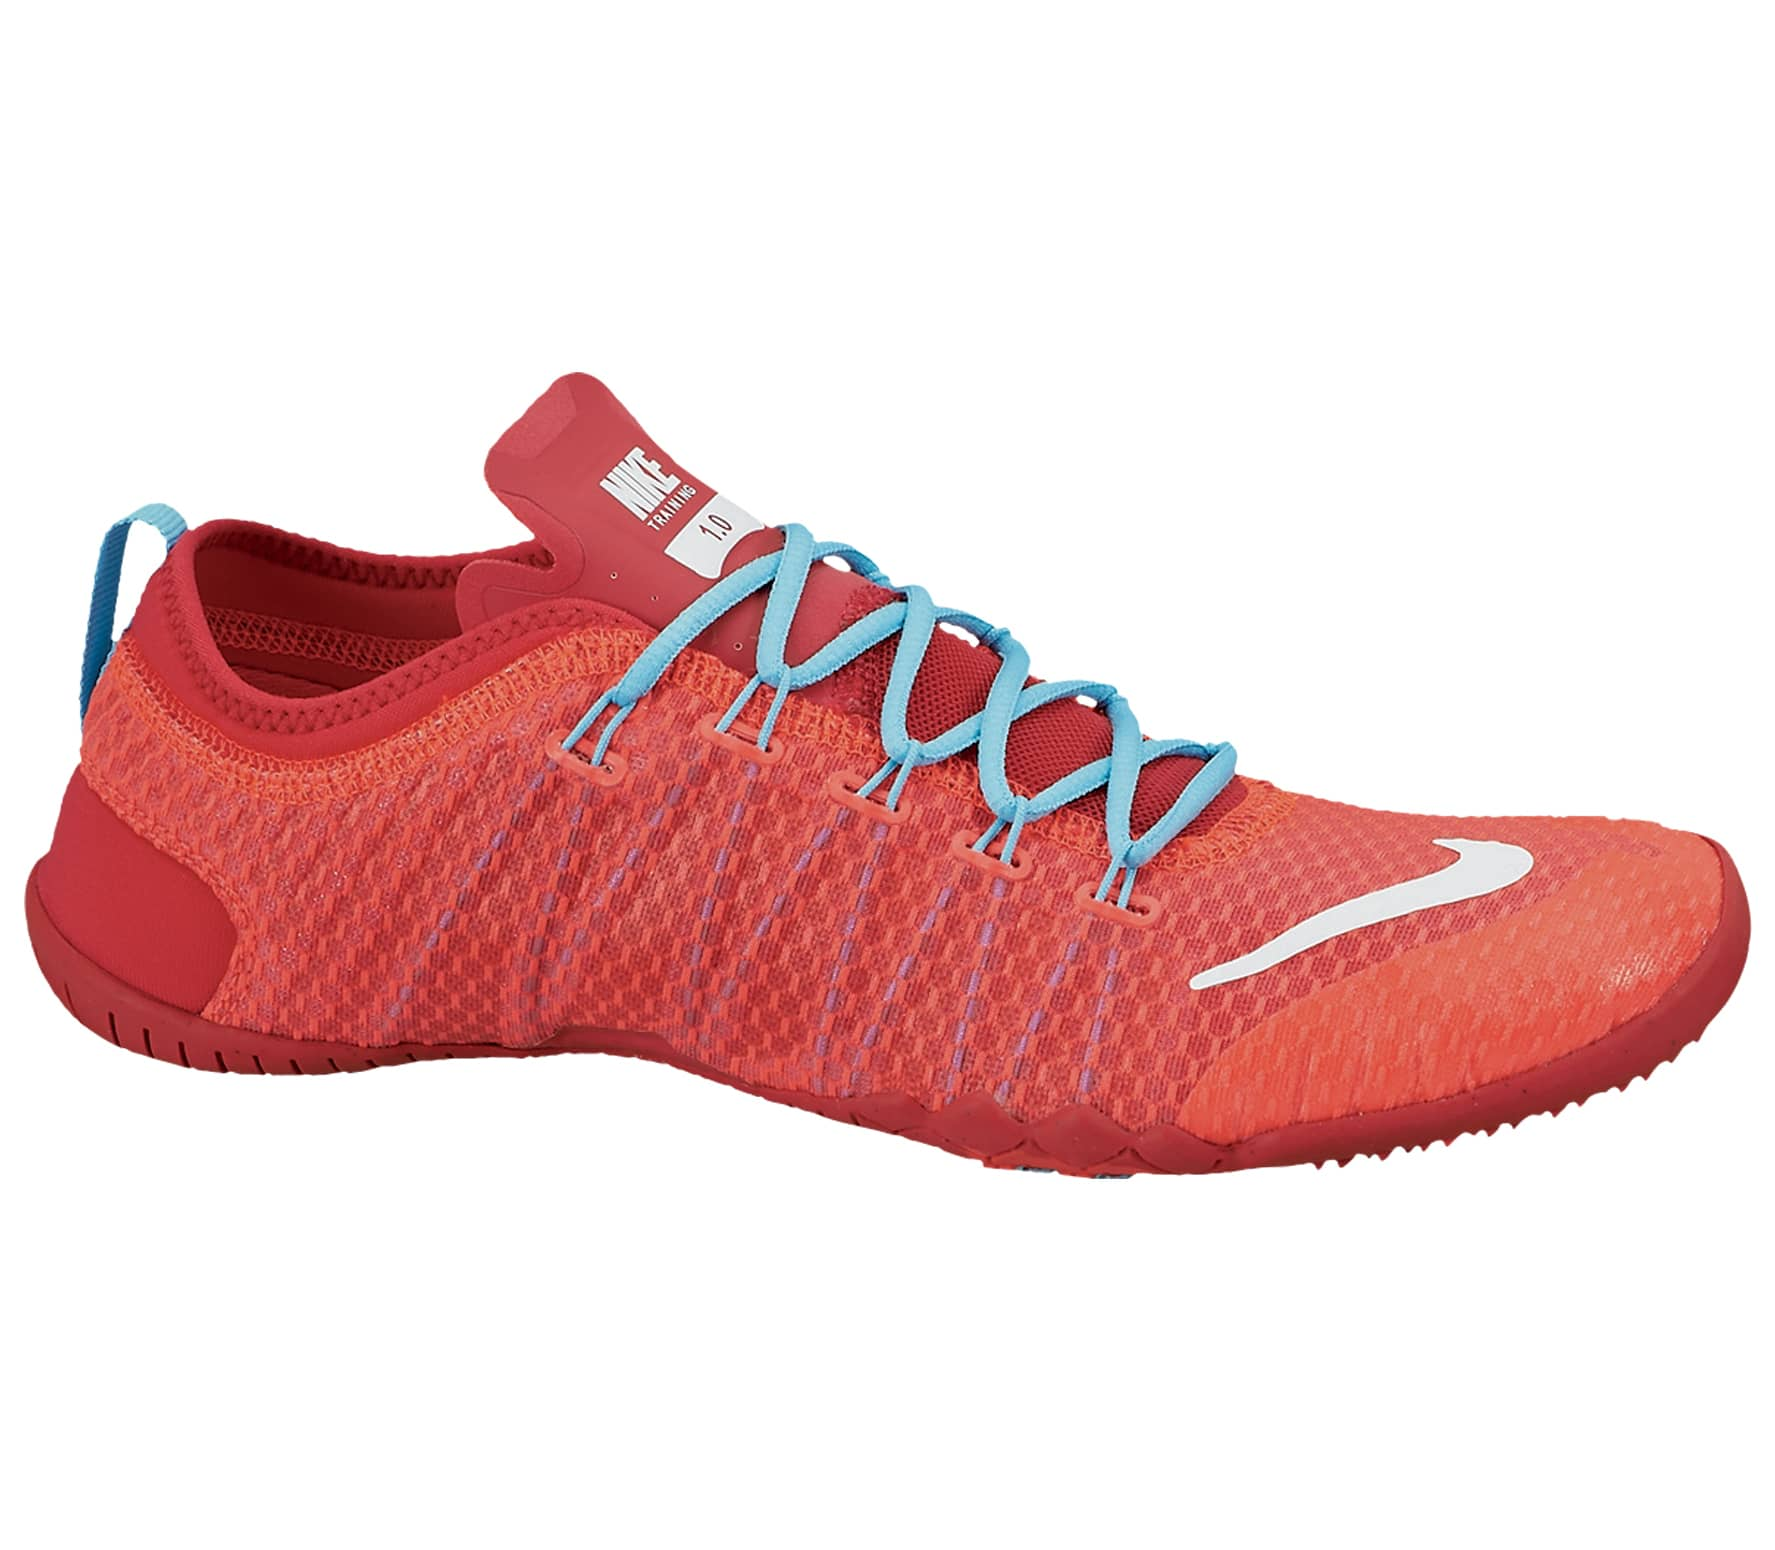 2fee1046758 ... usa nike free 1.0 cross bionic womens training shoes red white 26f3c  2dda9